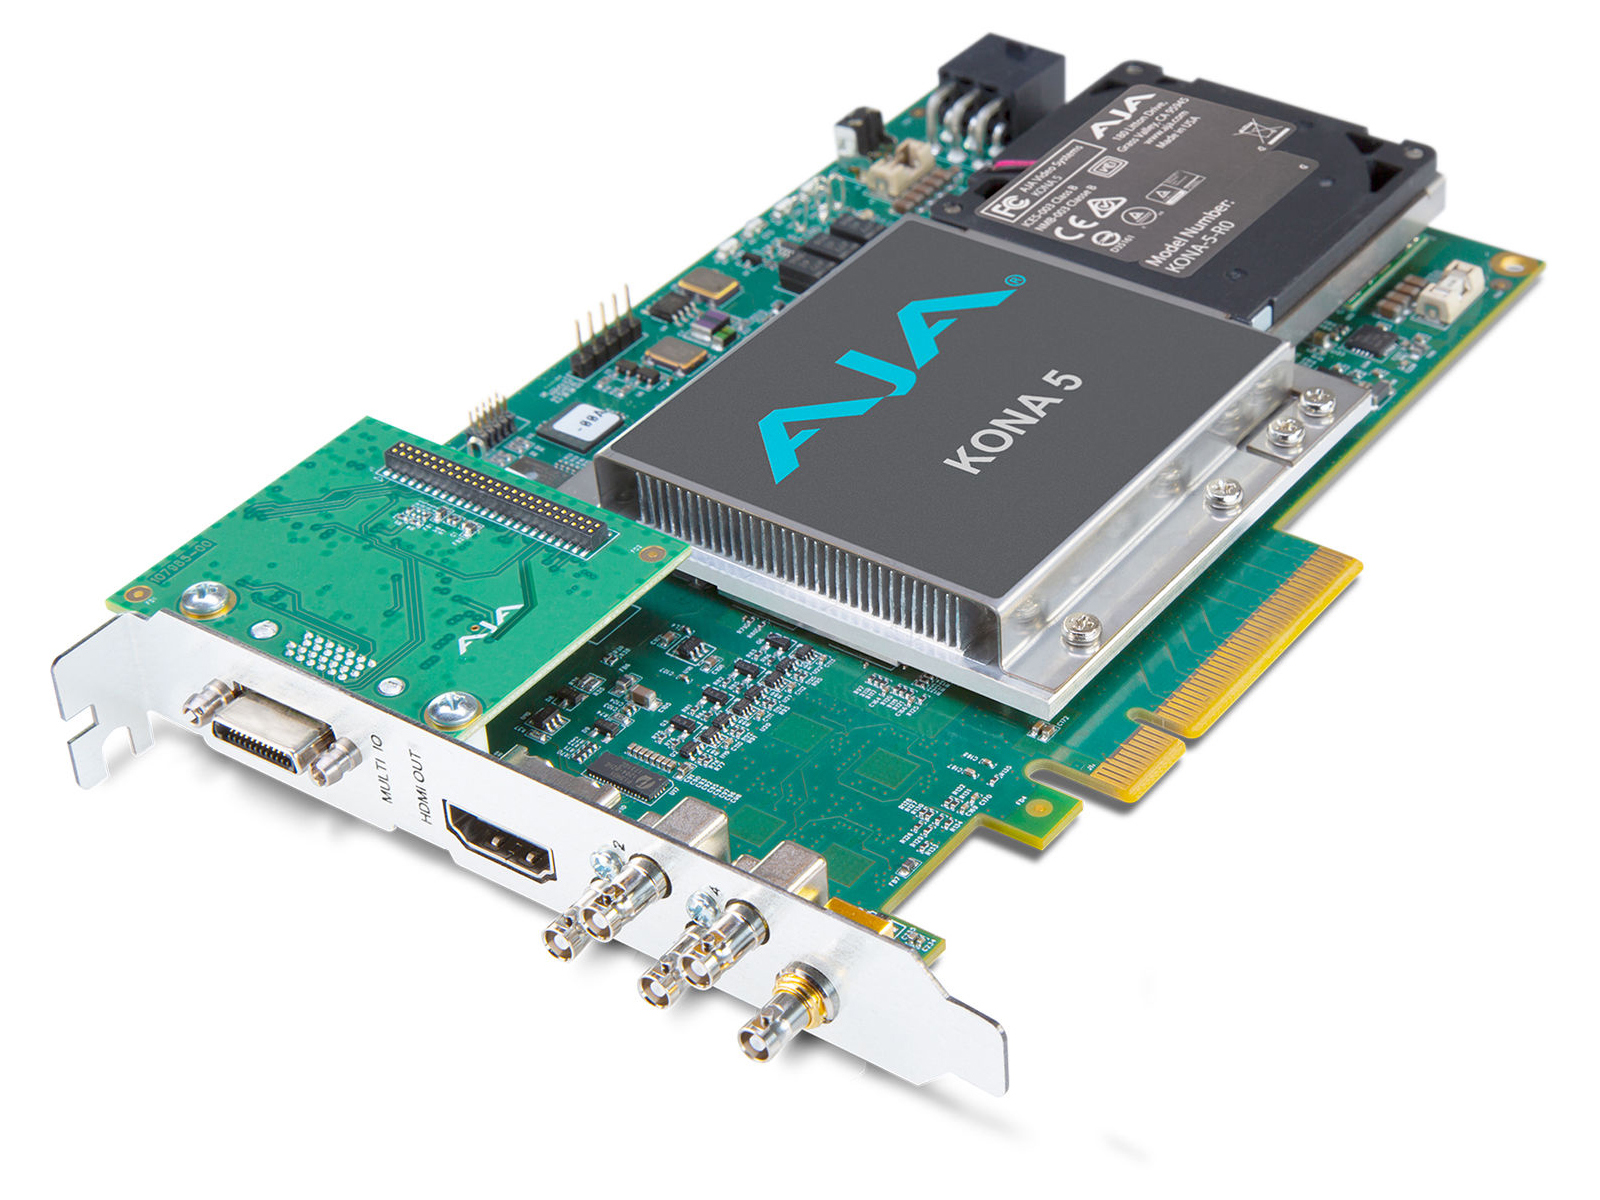 KONA-5-R0-S02 12G-SDI I/O 10-bit PCIe Card HDMI 2.0 output with HFR support (PCIe power with no cable) by AJA